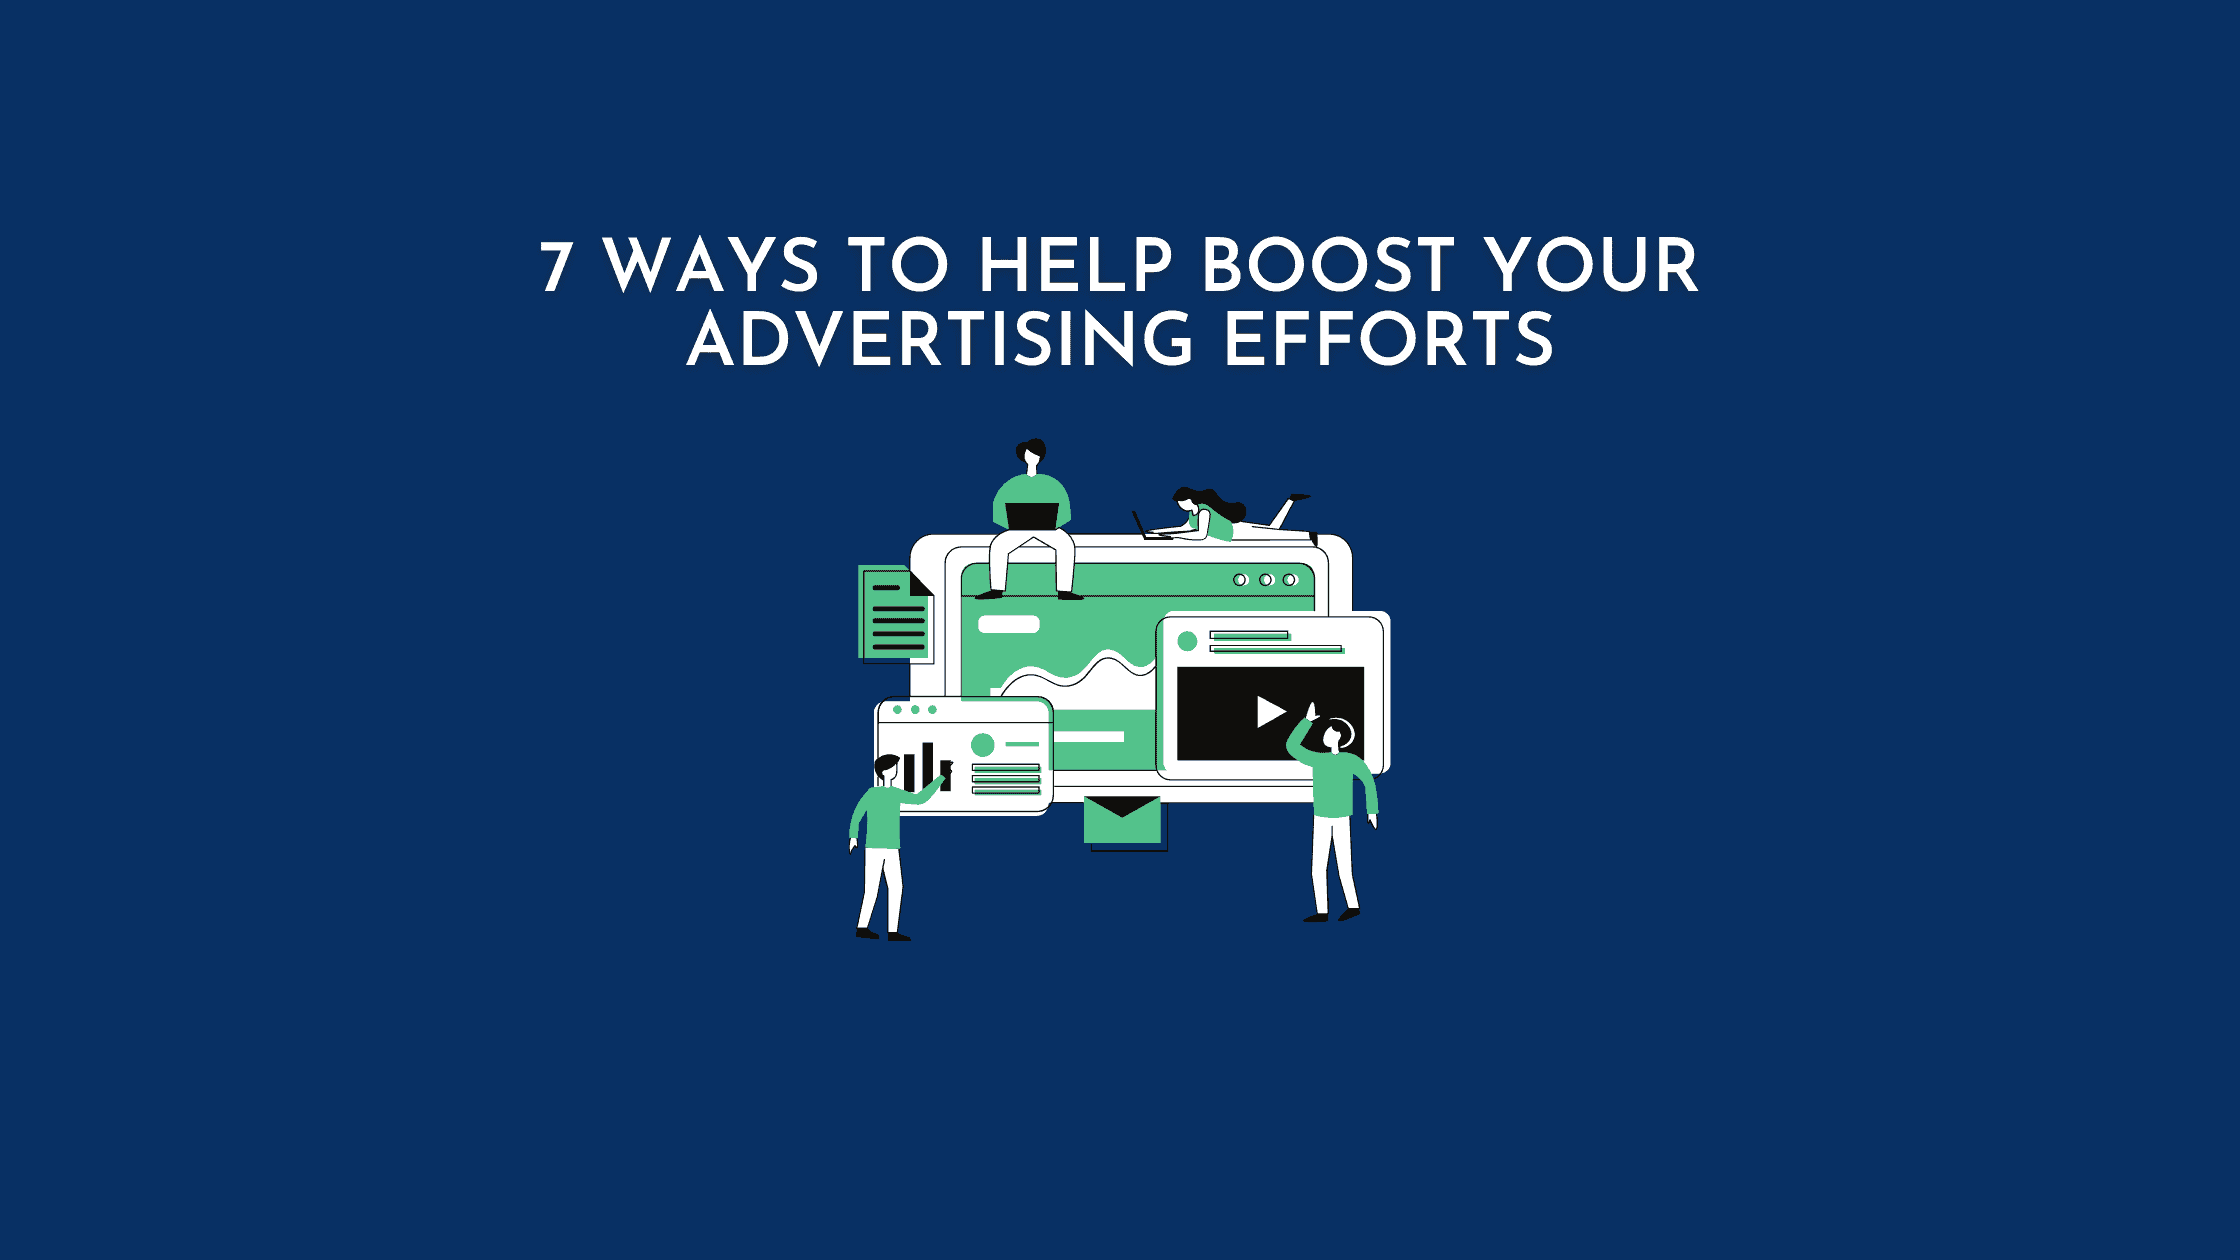 7 Ways To Help Boost Your Advertising Efforts